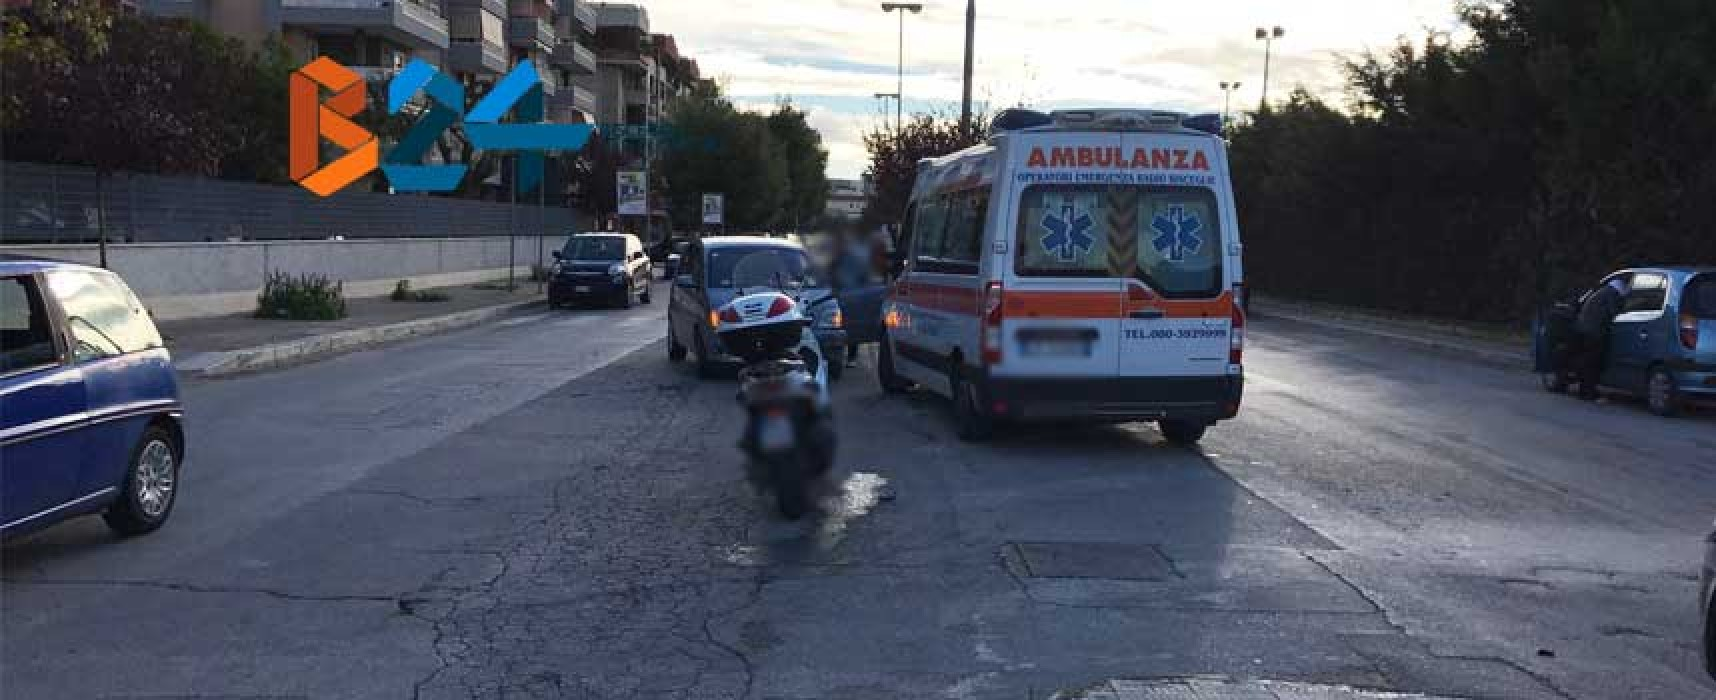 Incidente in via San Martino, motociclista al pronto soccorso / FOTO